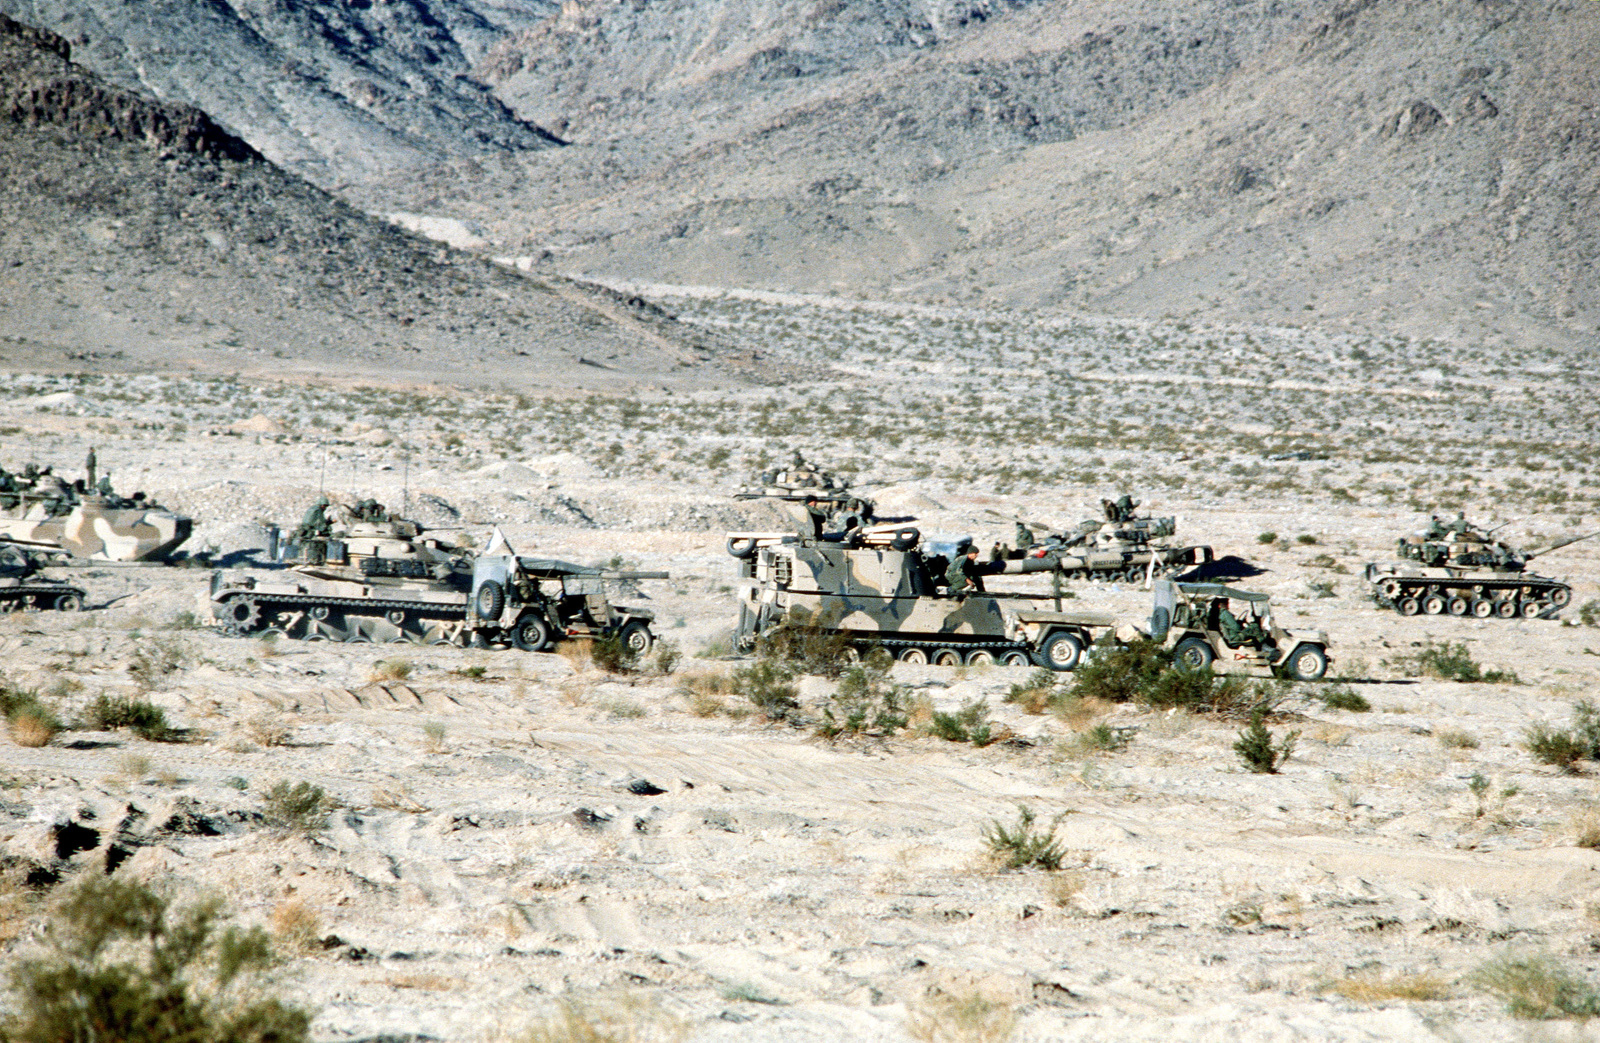 Many pieces of Marine Corps equipment such as M60A1 tanks, LVTC7 track landing vehicles, M109 155 mm self-propelled howitzers and M151 jeeps, are staged here during a commander's briefing. The equipment is being used in Operation CAX 1-2-82 at the Marine Corps Air-to-Ground Combat Center